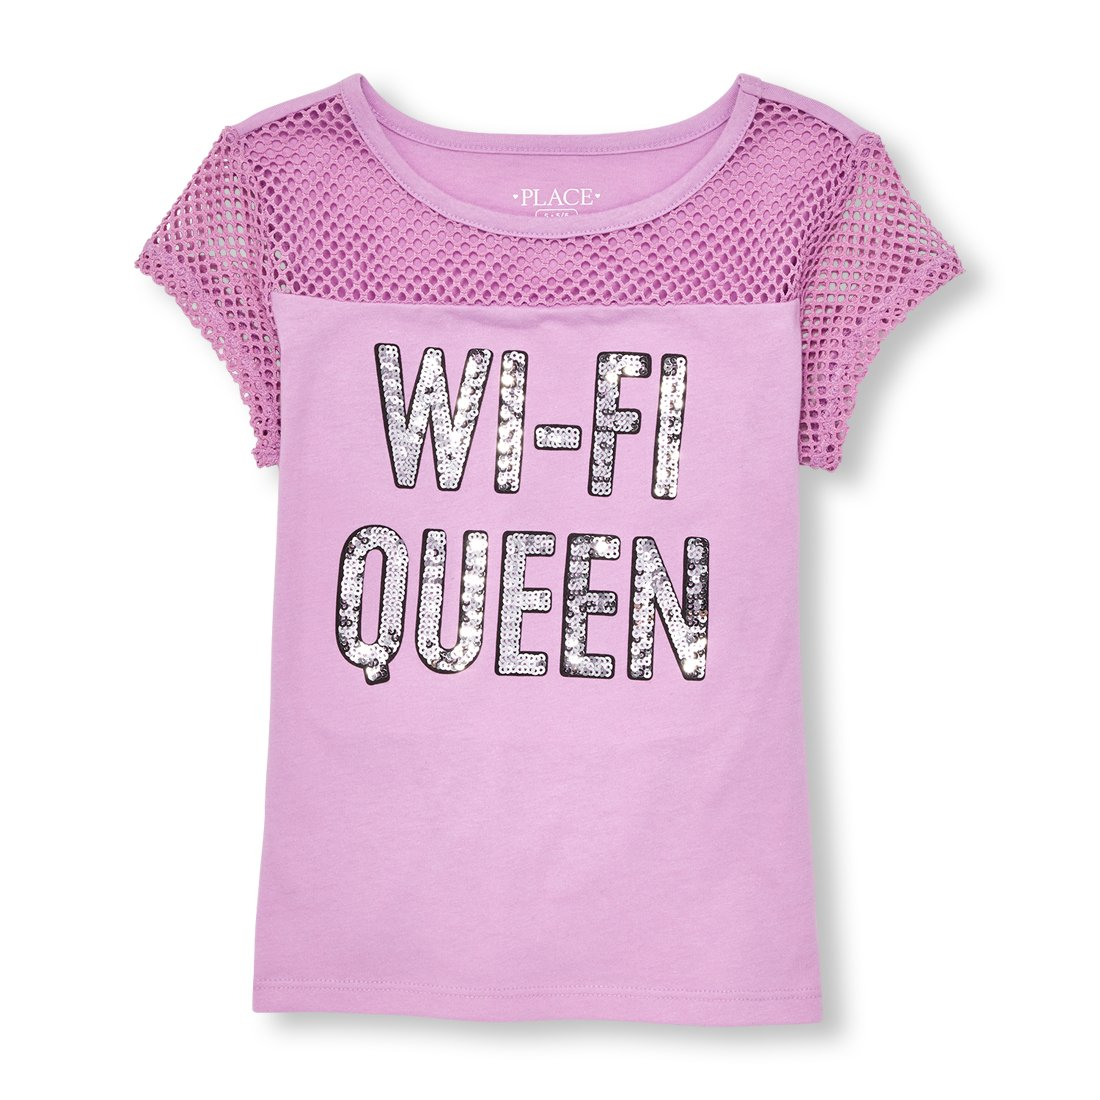 The Childrens Place Big Girls Short Sleeve Graphic Tee